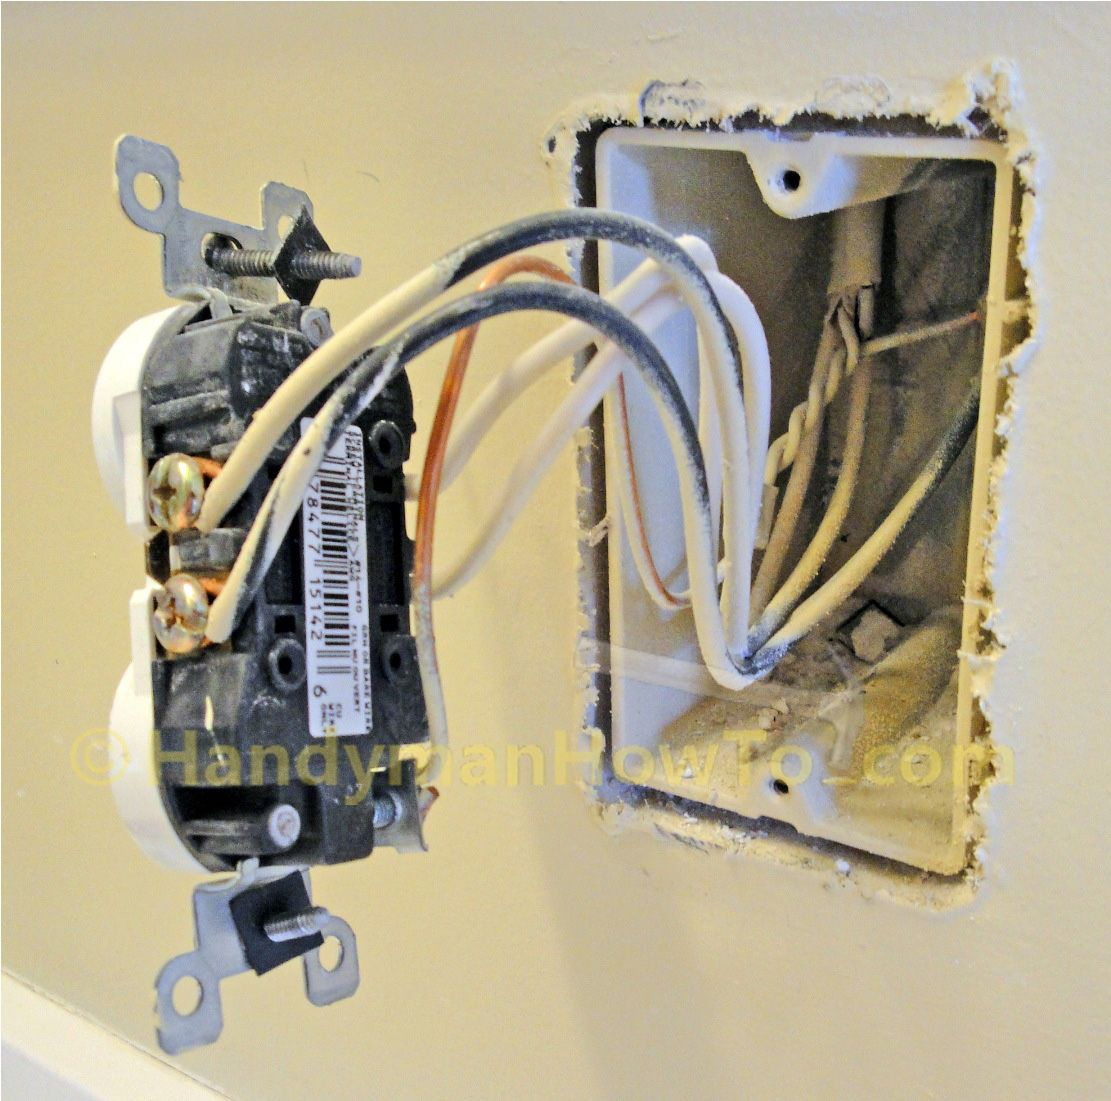 medium resolution of how to replace a worn out electrical outlet photo tutorial with parallel and series wiring diagrams